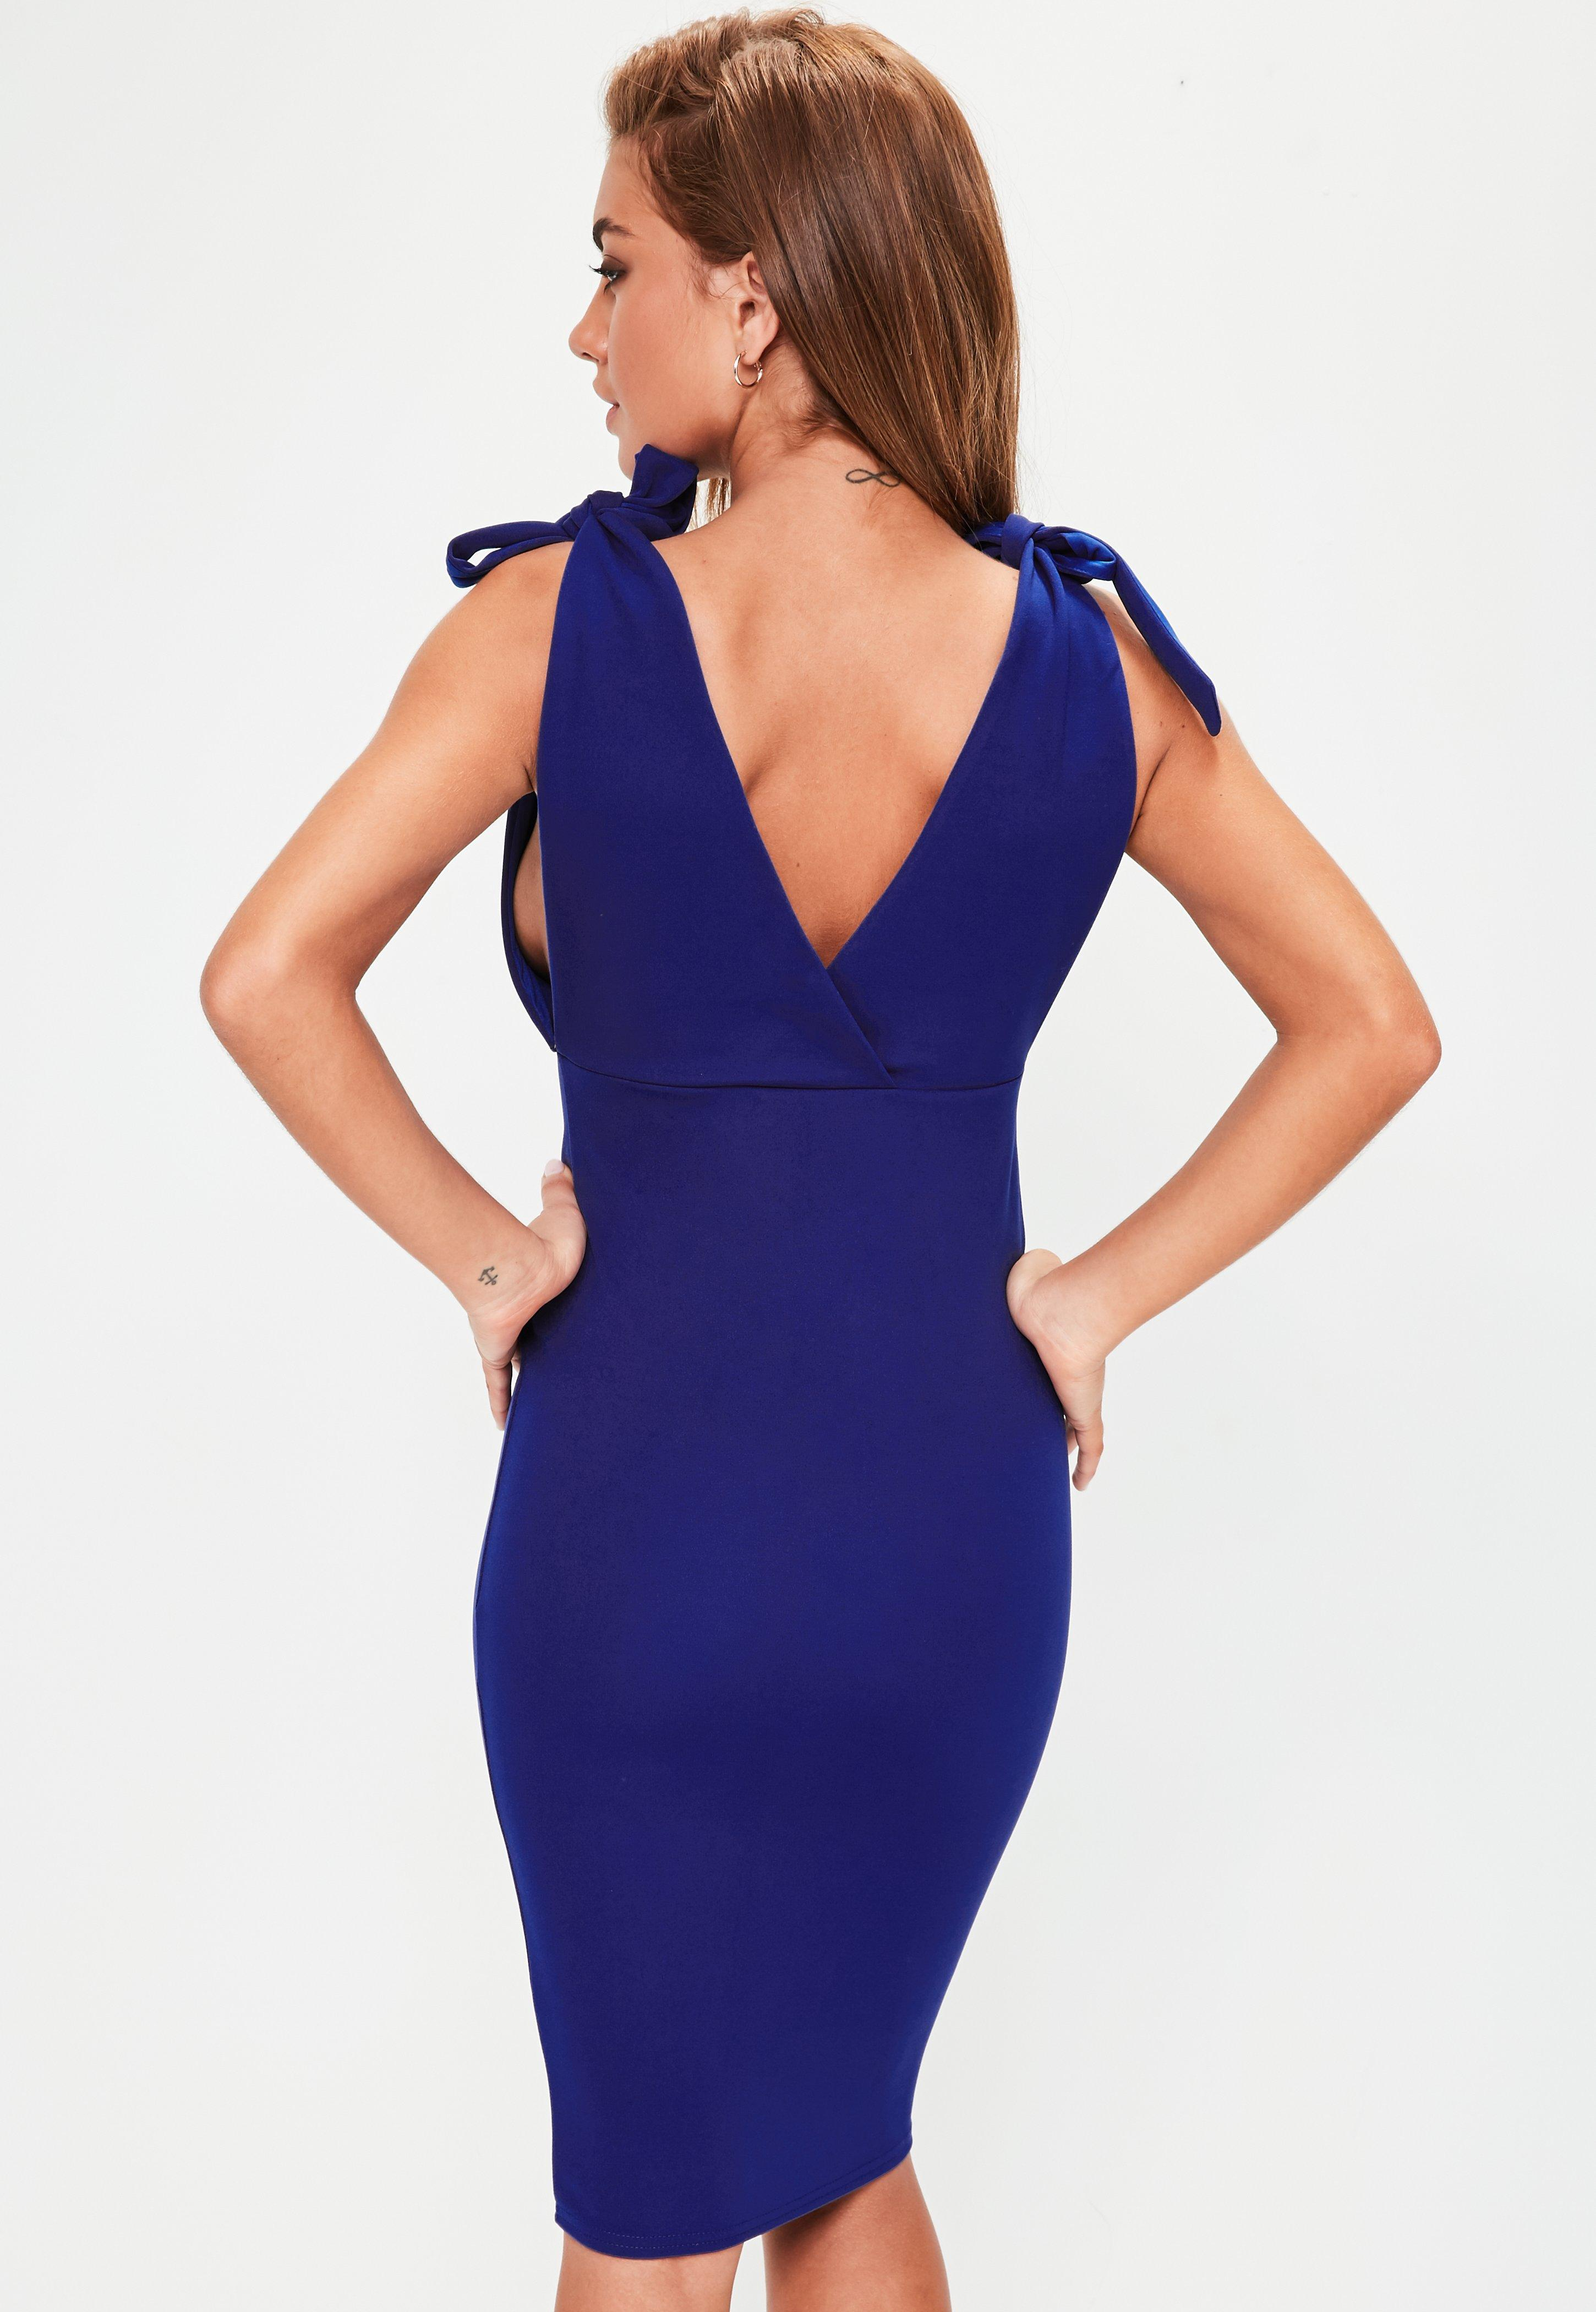 Lyst - Missguided Blue Bow Shoulder Plunge Midi Dress in Blue e83274bbe